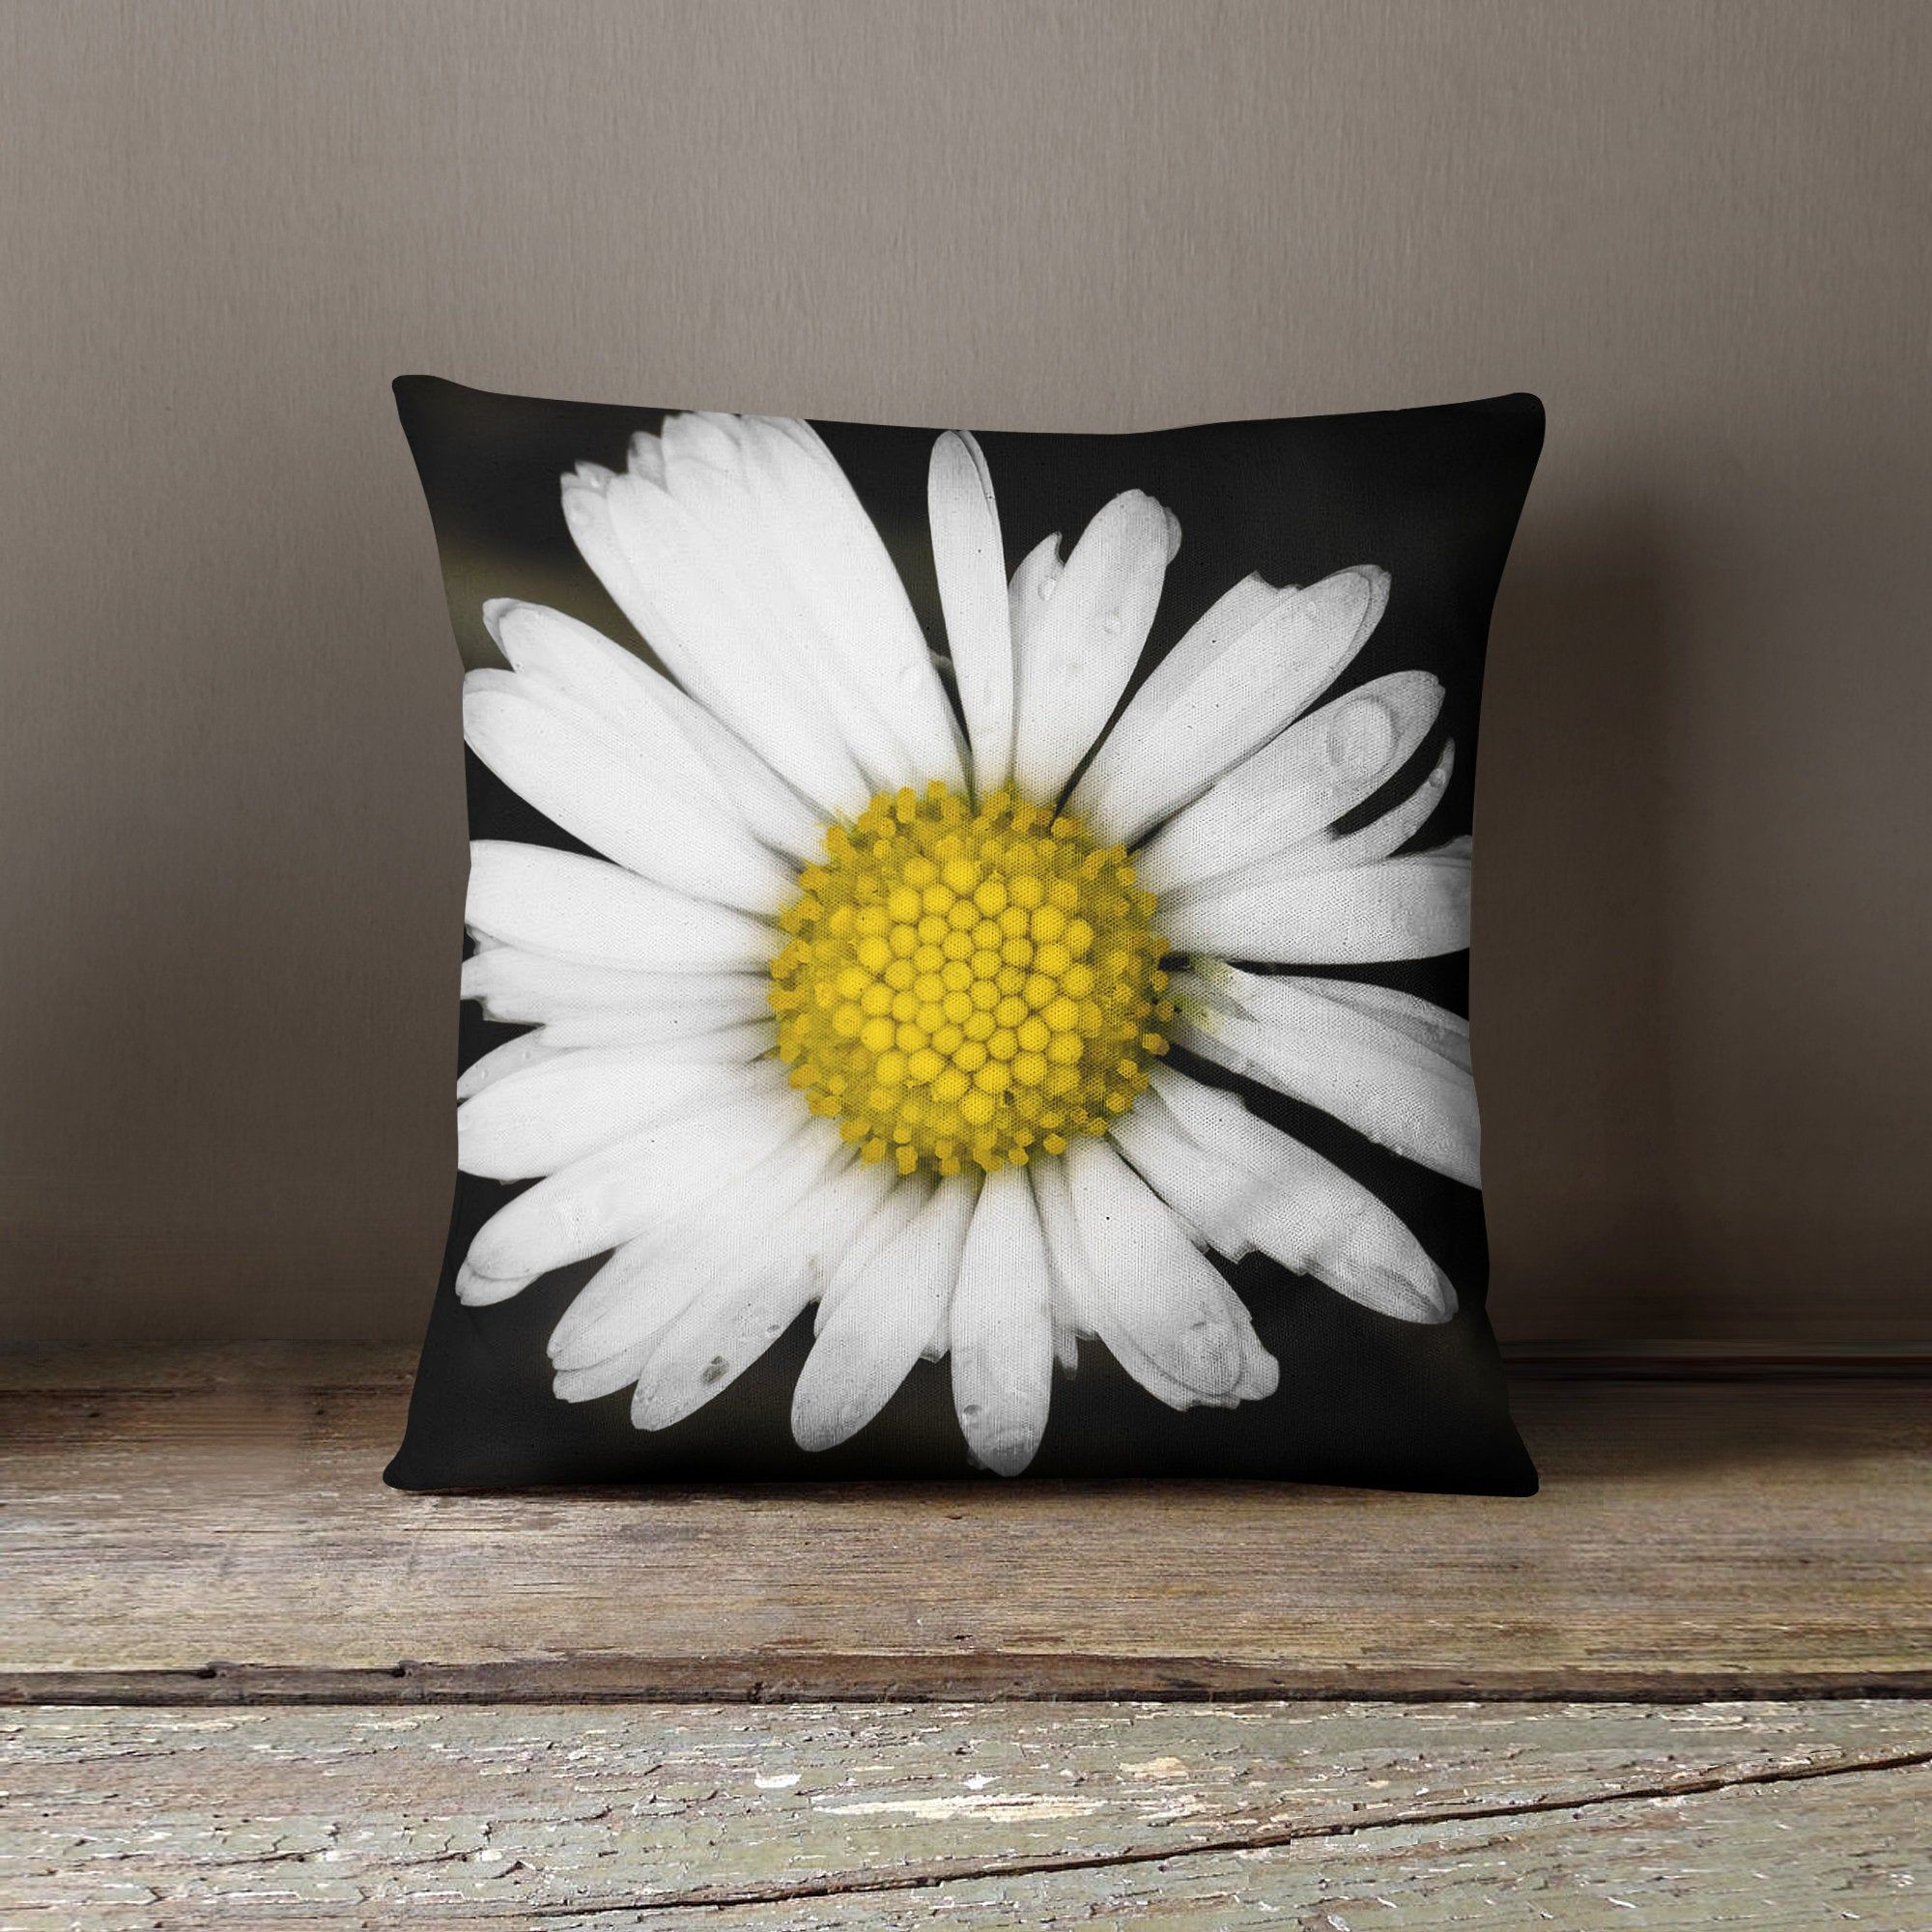 Daisy Pillow Cover Sofa Pillow Covers Daisy Pillow Case Etsy Sofa Pillow Covers Daisy Pillows Pillow Covers